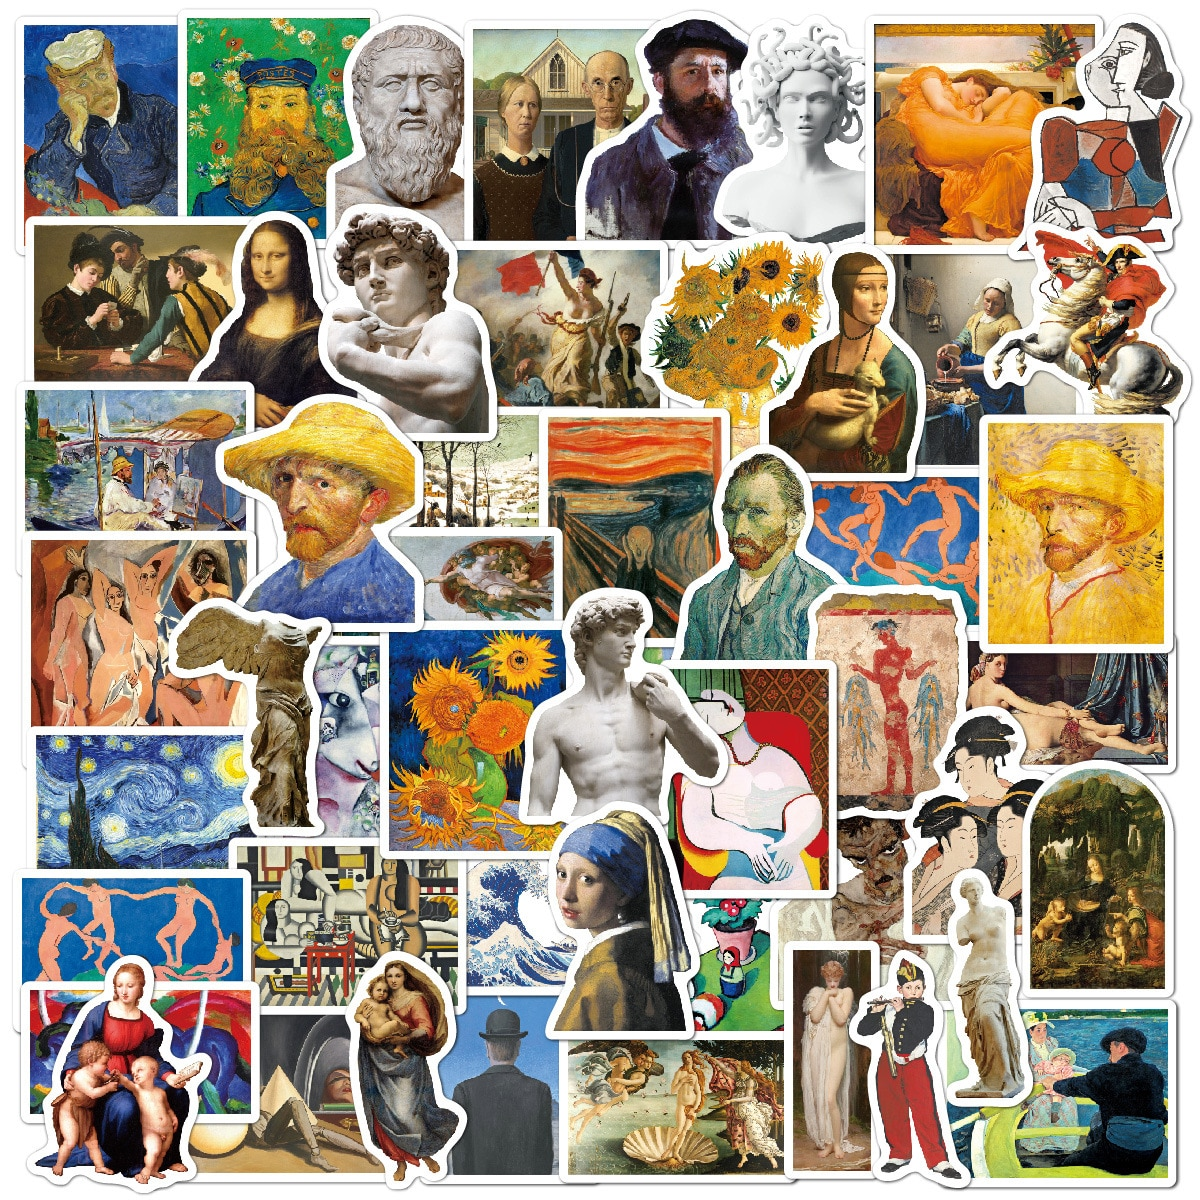 52 Piece Not Repeat Sticker Oil Painting Art Van Gogh Mona Lisa Stickers For Guitar Laptop Macbook Pro Luggage Skateboard Decals